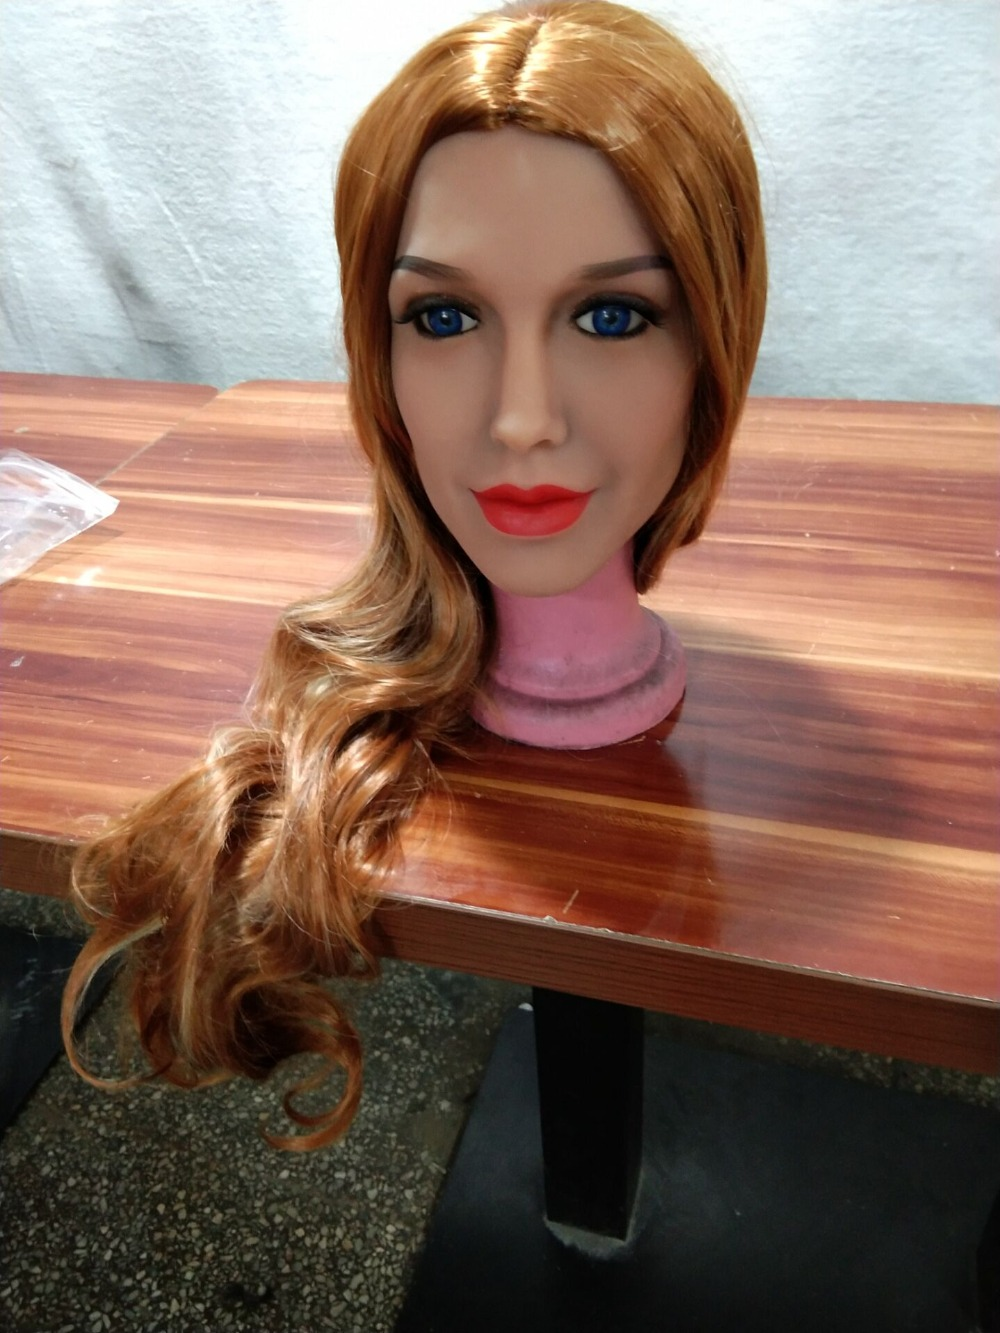 AILIJIA Oral Sex Doll Heads with m16 Connector Silicone Doll Mold for Big Size Love Dolls 135cm-176cm Sex Toy Doll(Head Only)